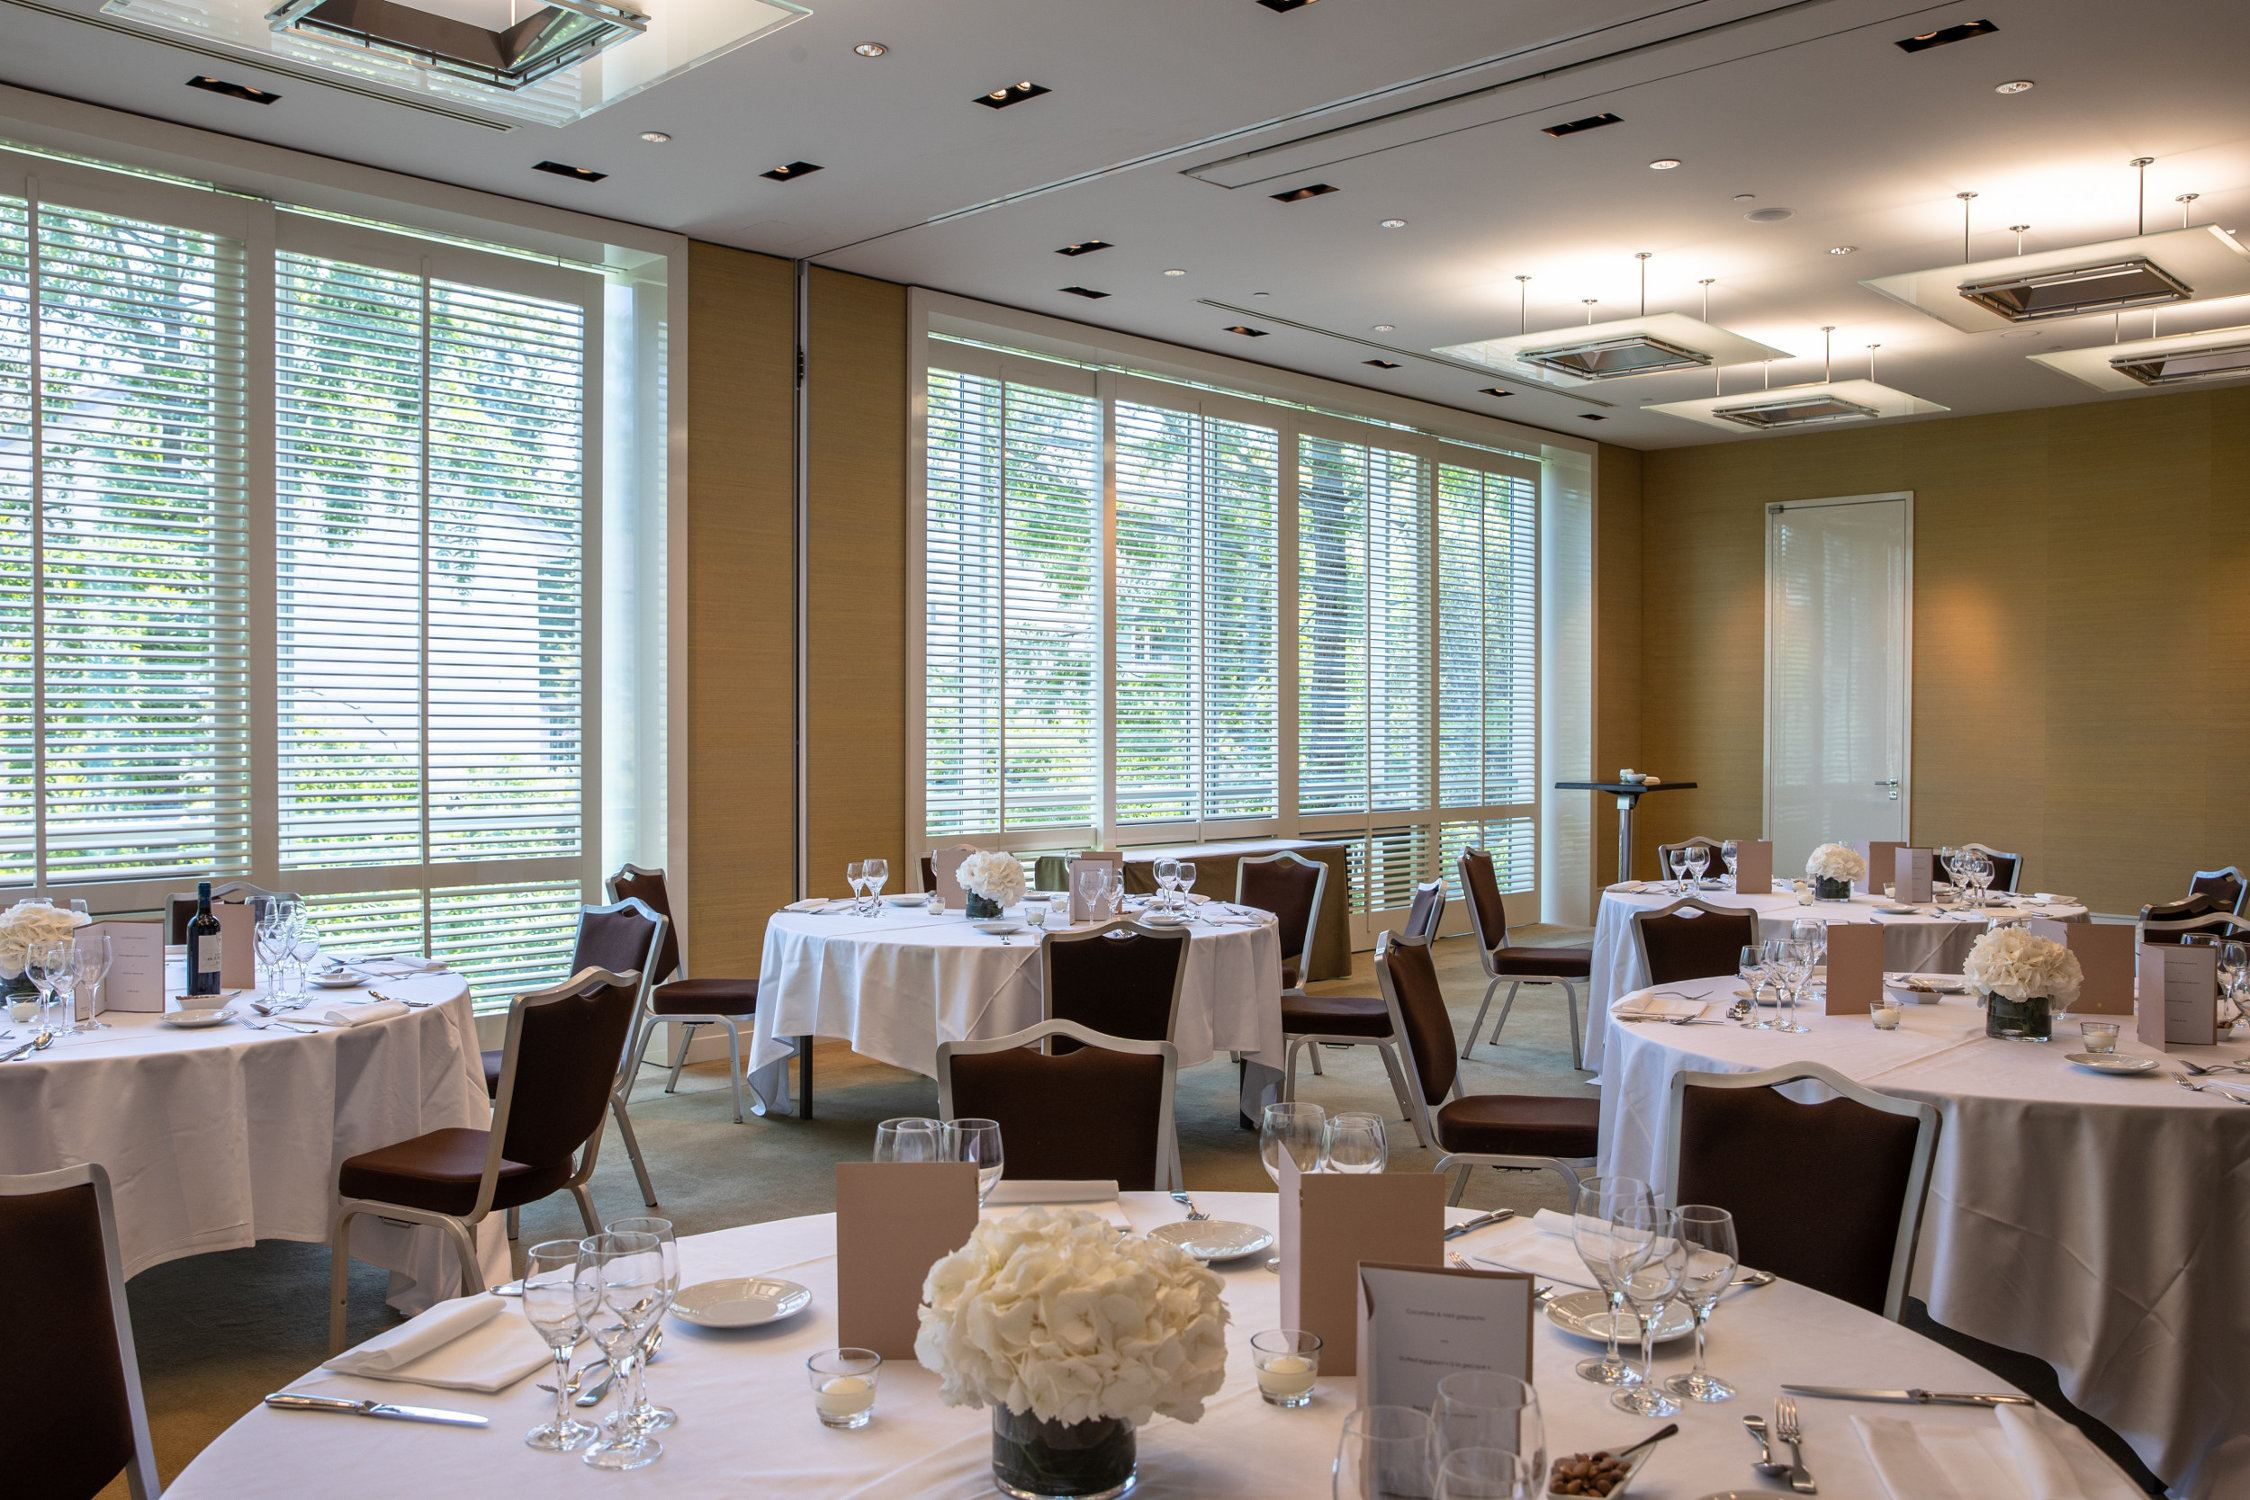 InterContinental-Geneva-Hotel-Meetings-conferences-2